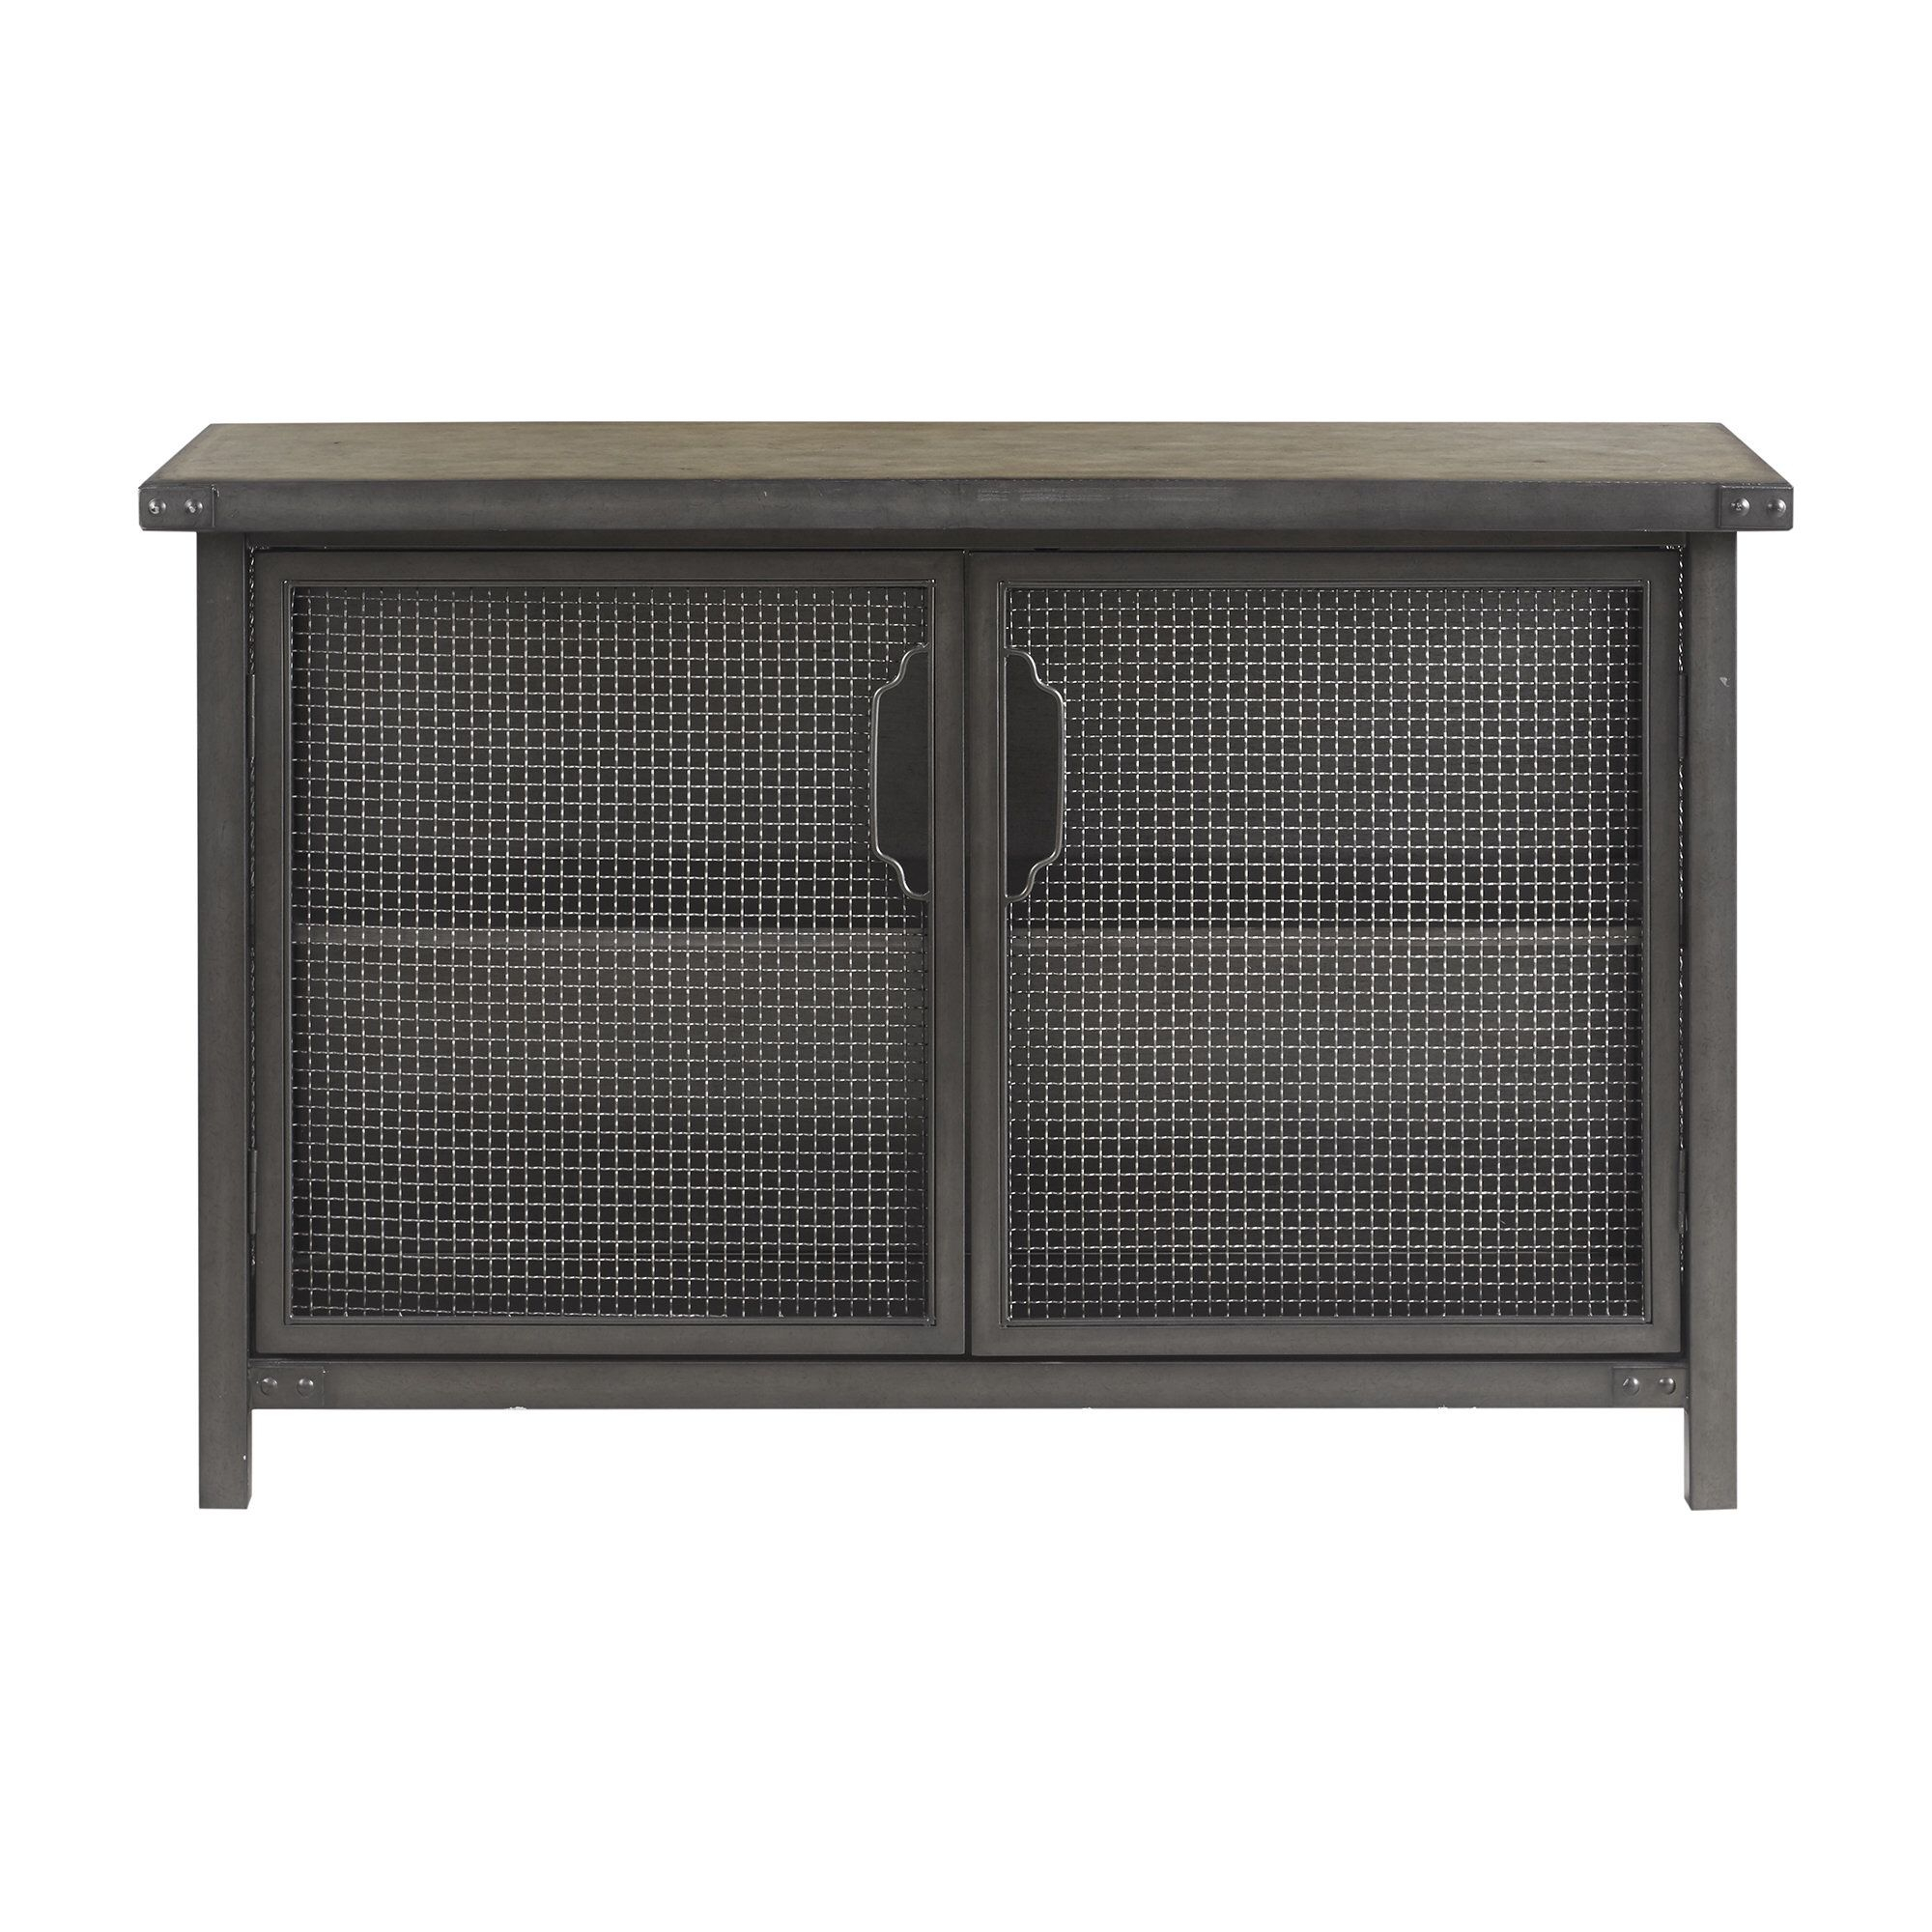 Casolino Sideboard | Dawn | Sideboard, Sideboard Cabinet For Best And Newest Casolino Sideboards (#2 of 20)